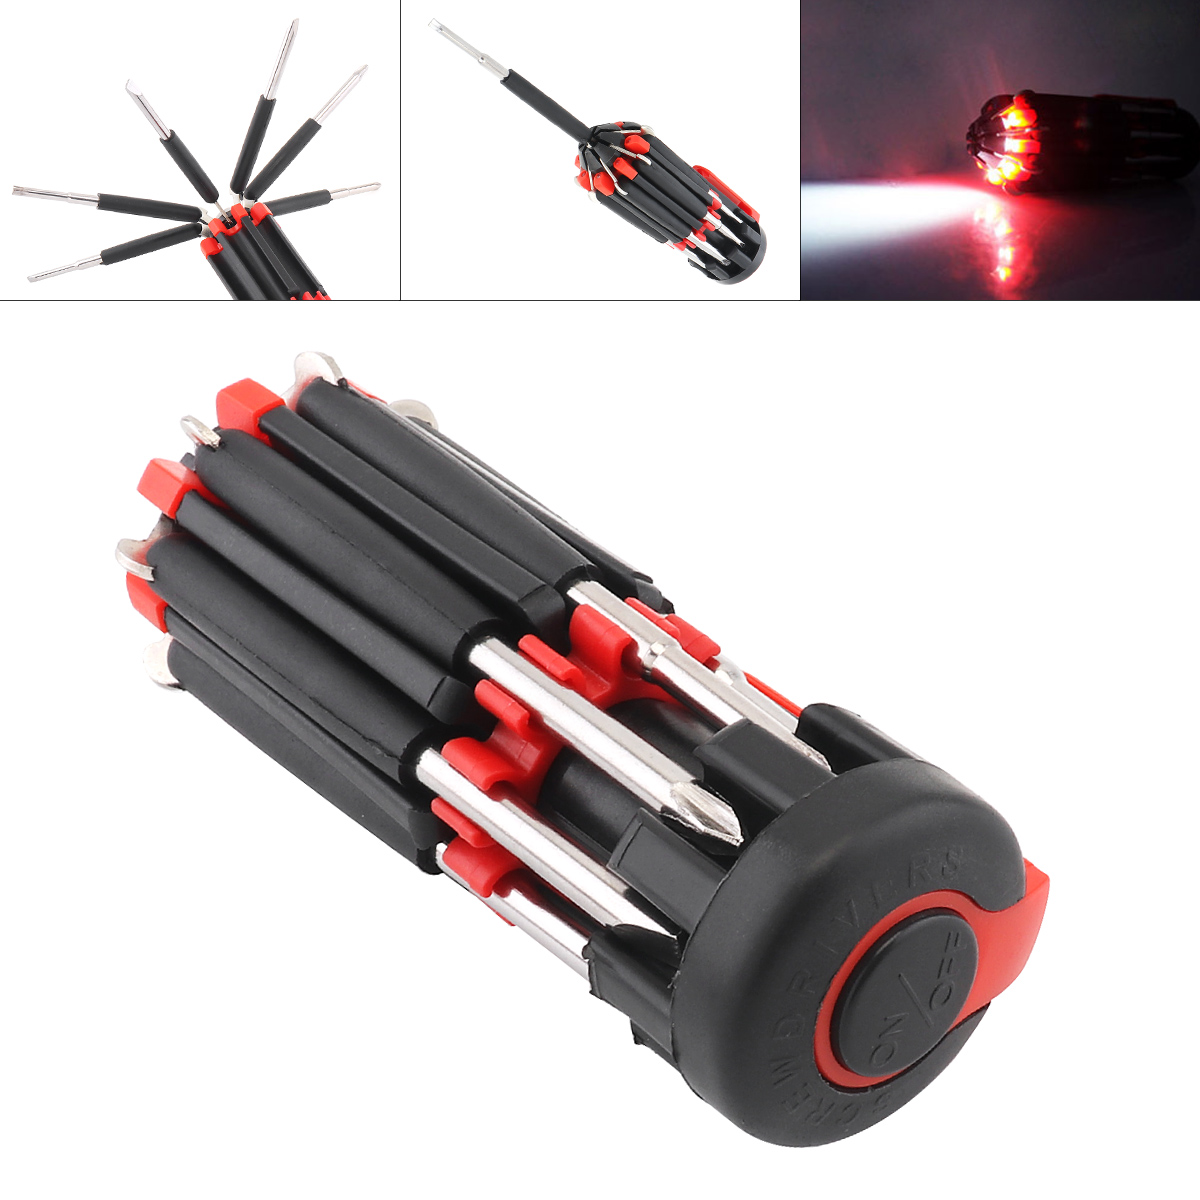 <font><b>8</b></font> <font><b>in</b></font> <font><b>1</b></font> Multi Function Multi <font><b>Screwdriver</b></font> Set Hand Repair Tools with LED <font><b>Flashlight</b></font> Torch for Home Appliance Car image